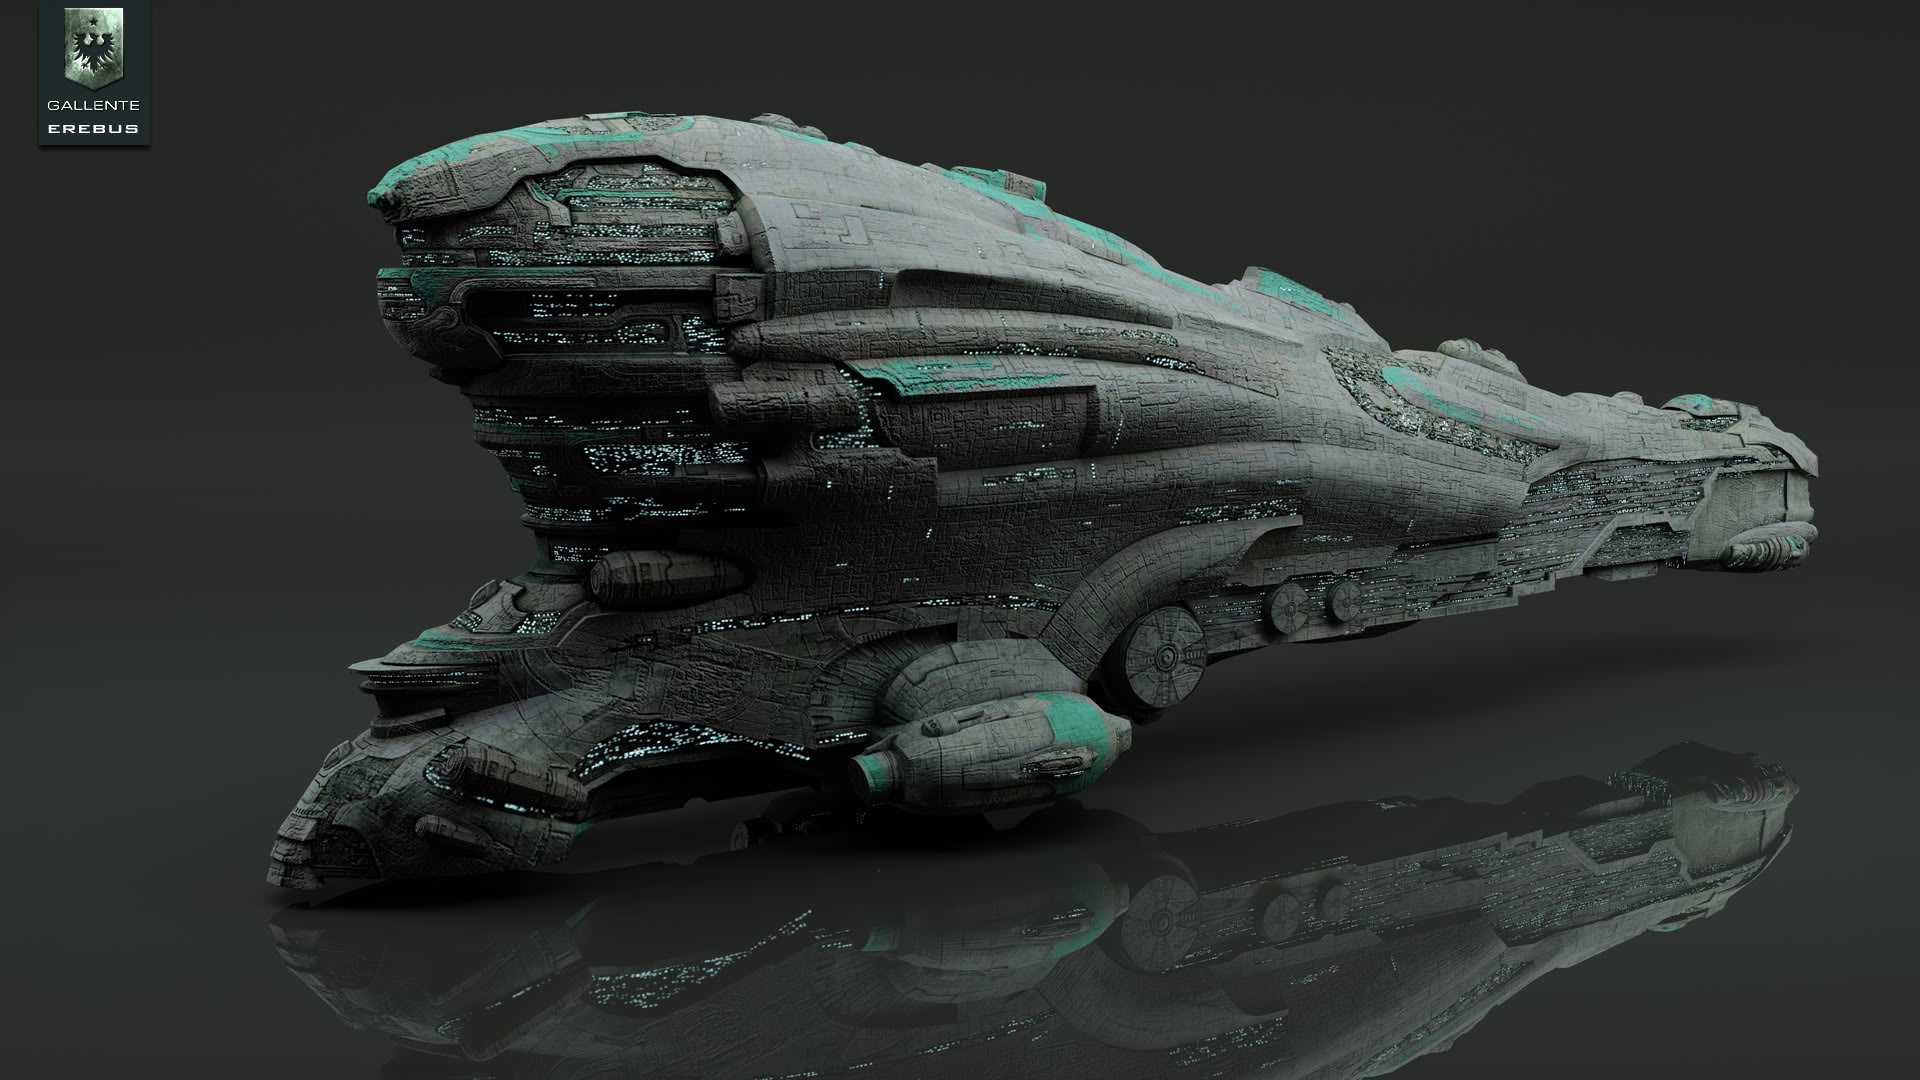 hight resolution of eve online inferno image gallery reveals game ui feature